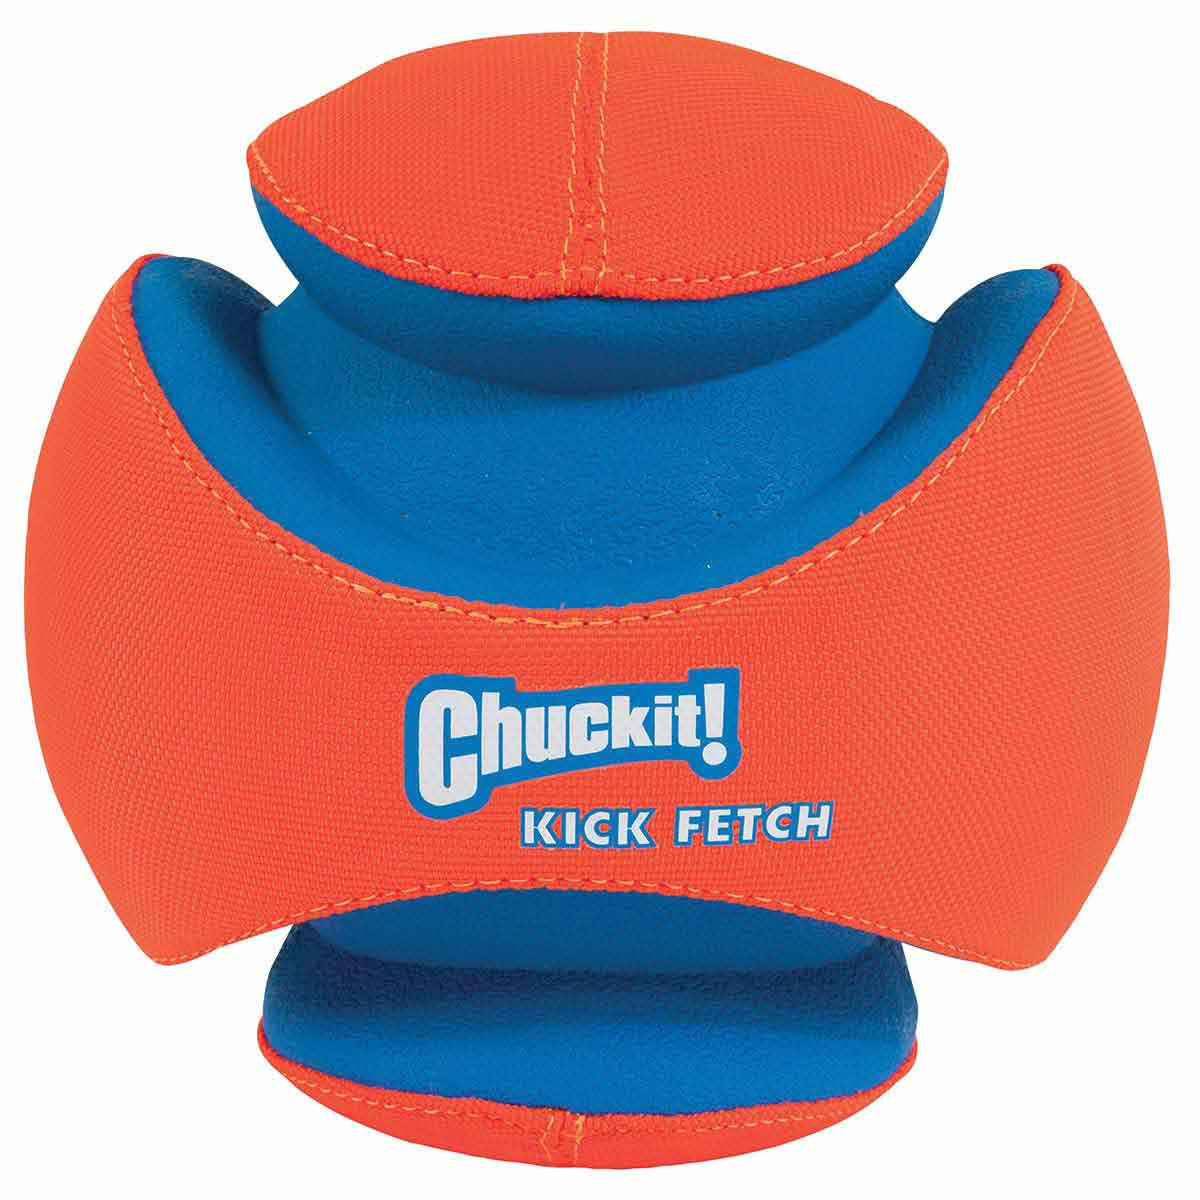 8 inch Chuckit! Kick Fetch Ball Large in Packaging